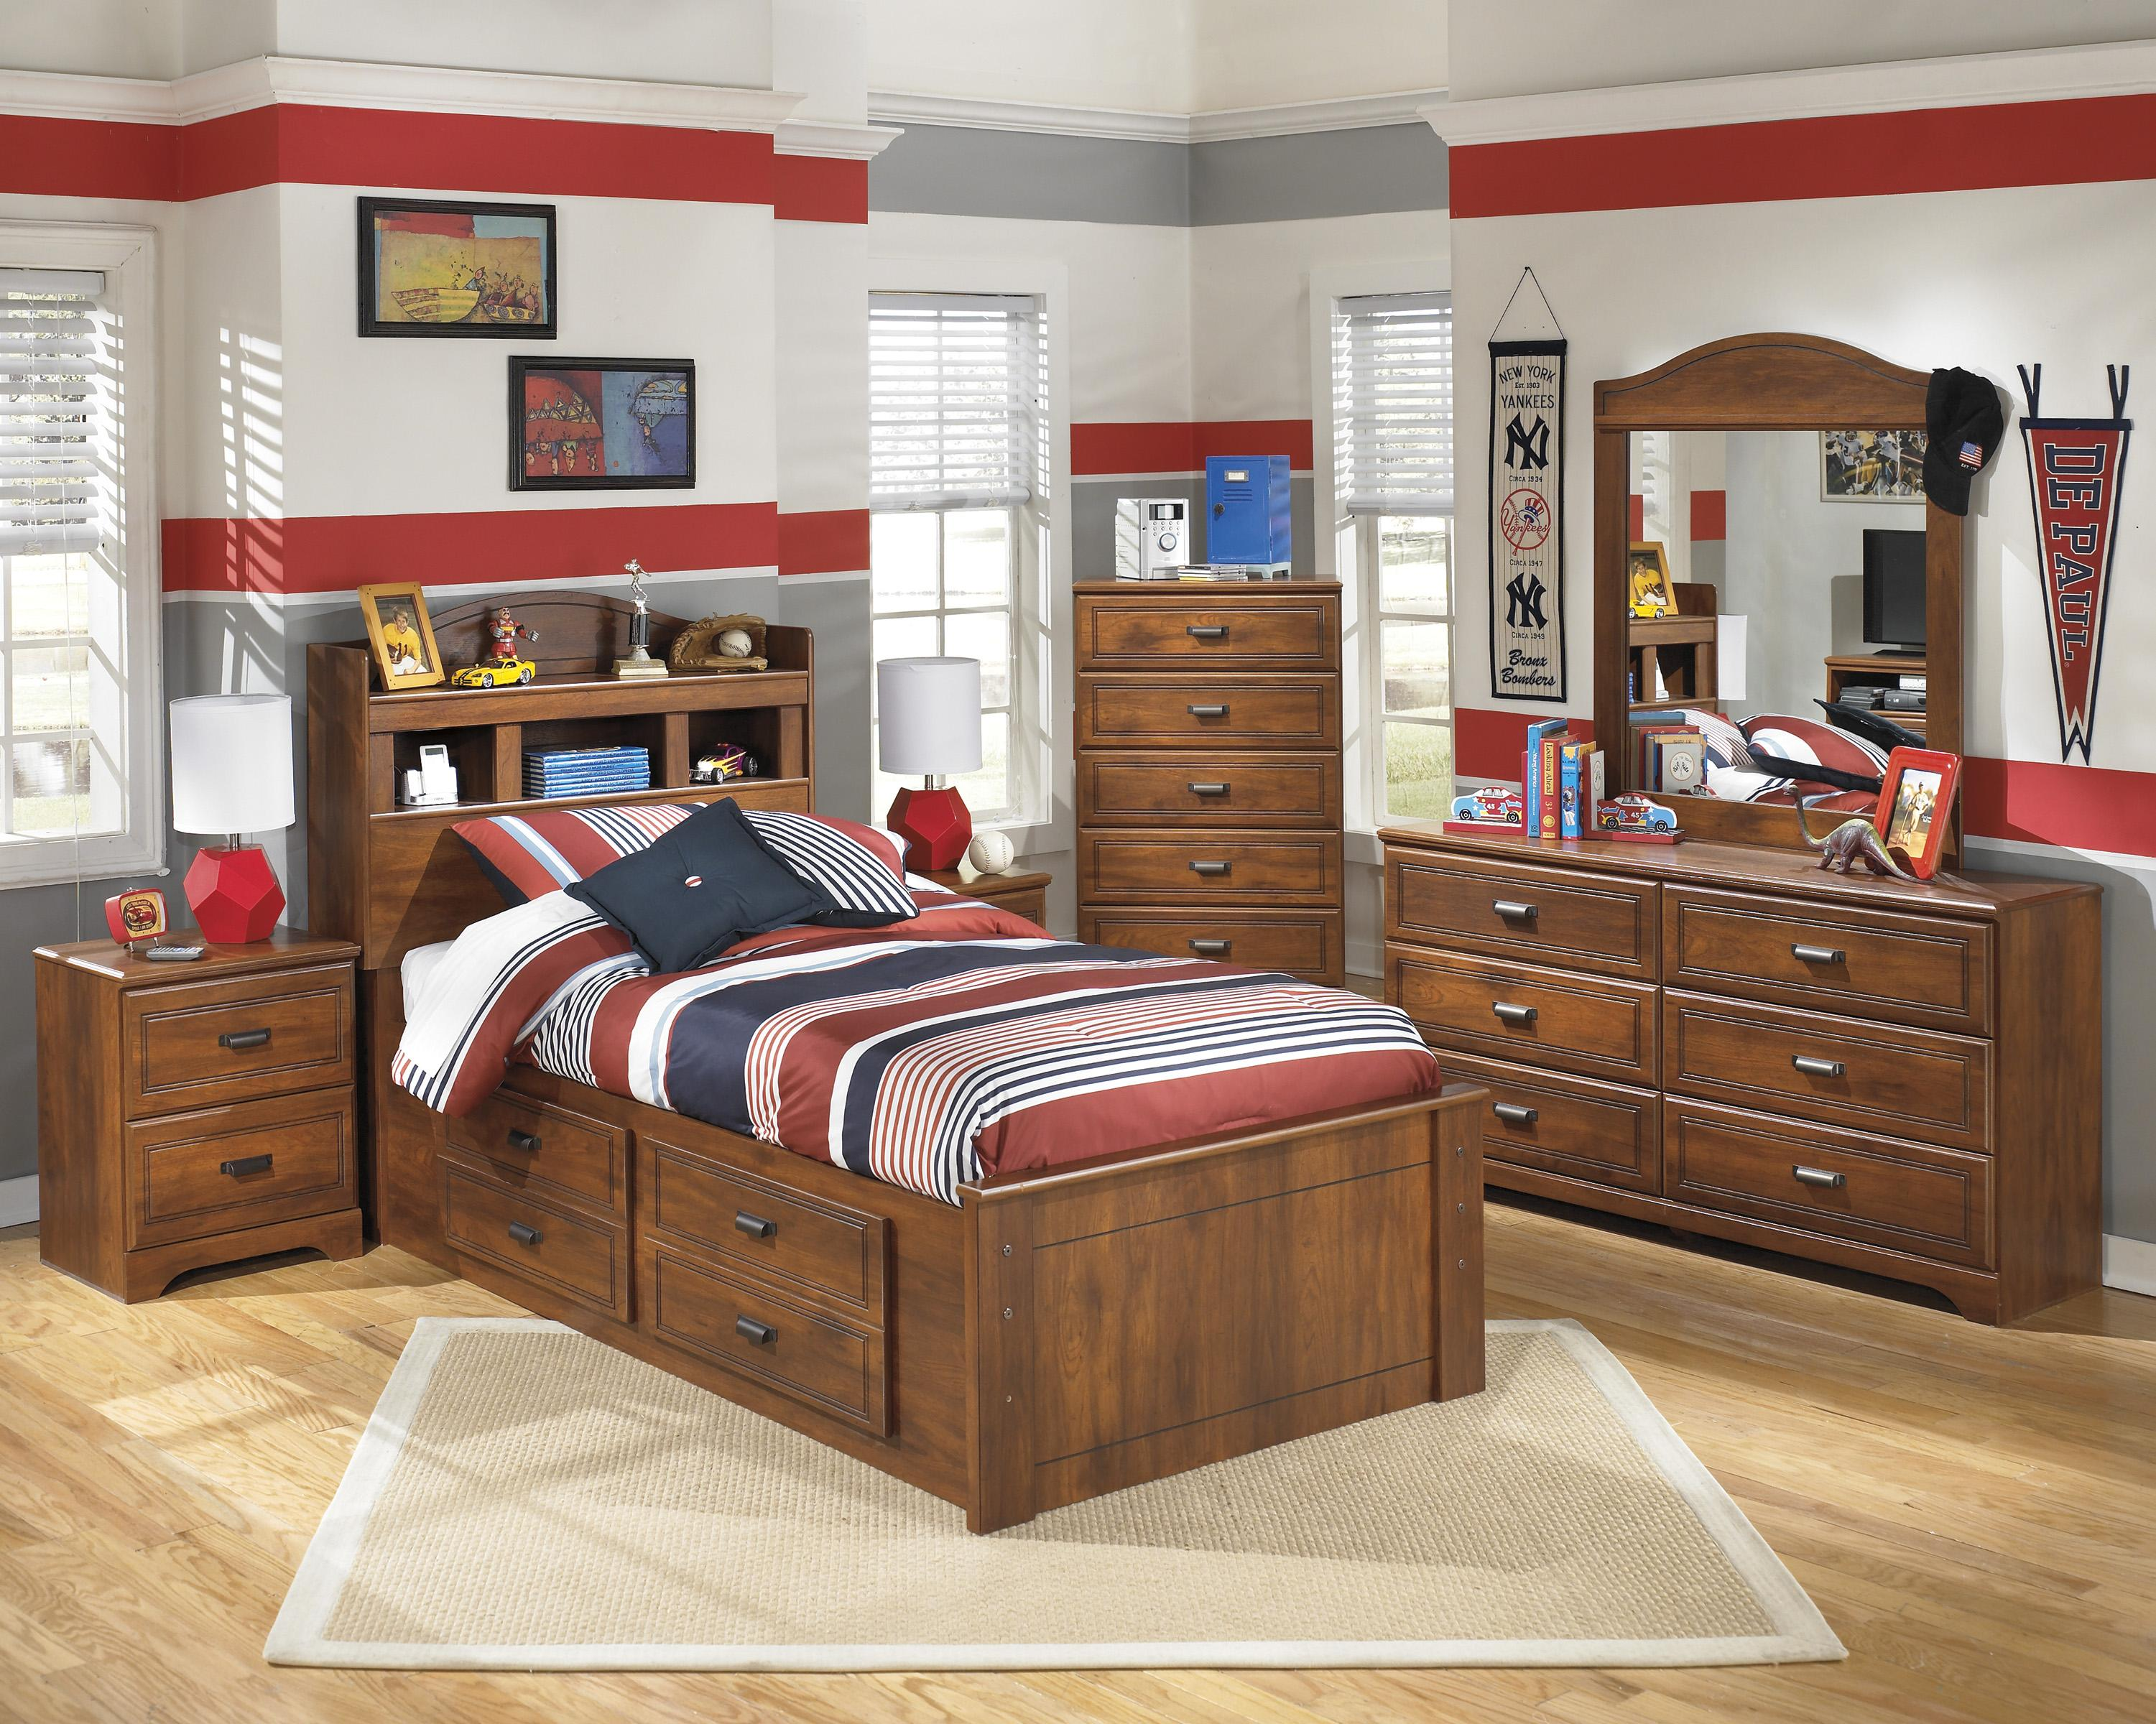 Barchan Twin Bedroom Group by Signature Design by Ashley at Zak's Warehouse Clearance Center